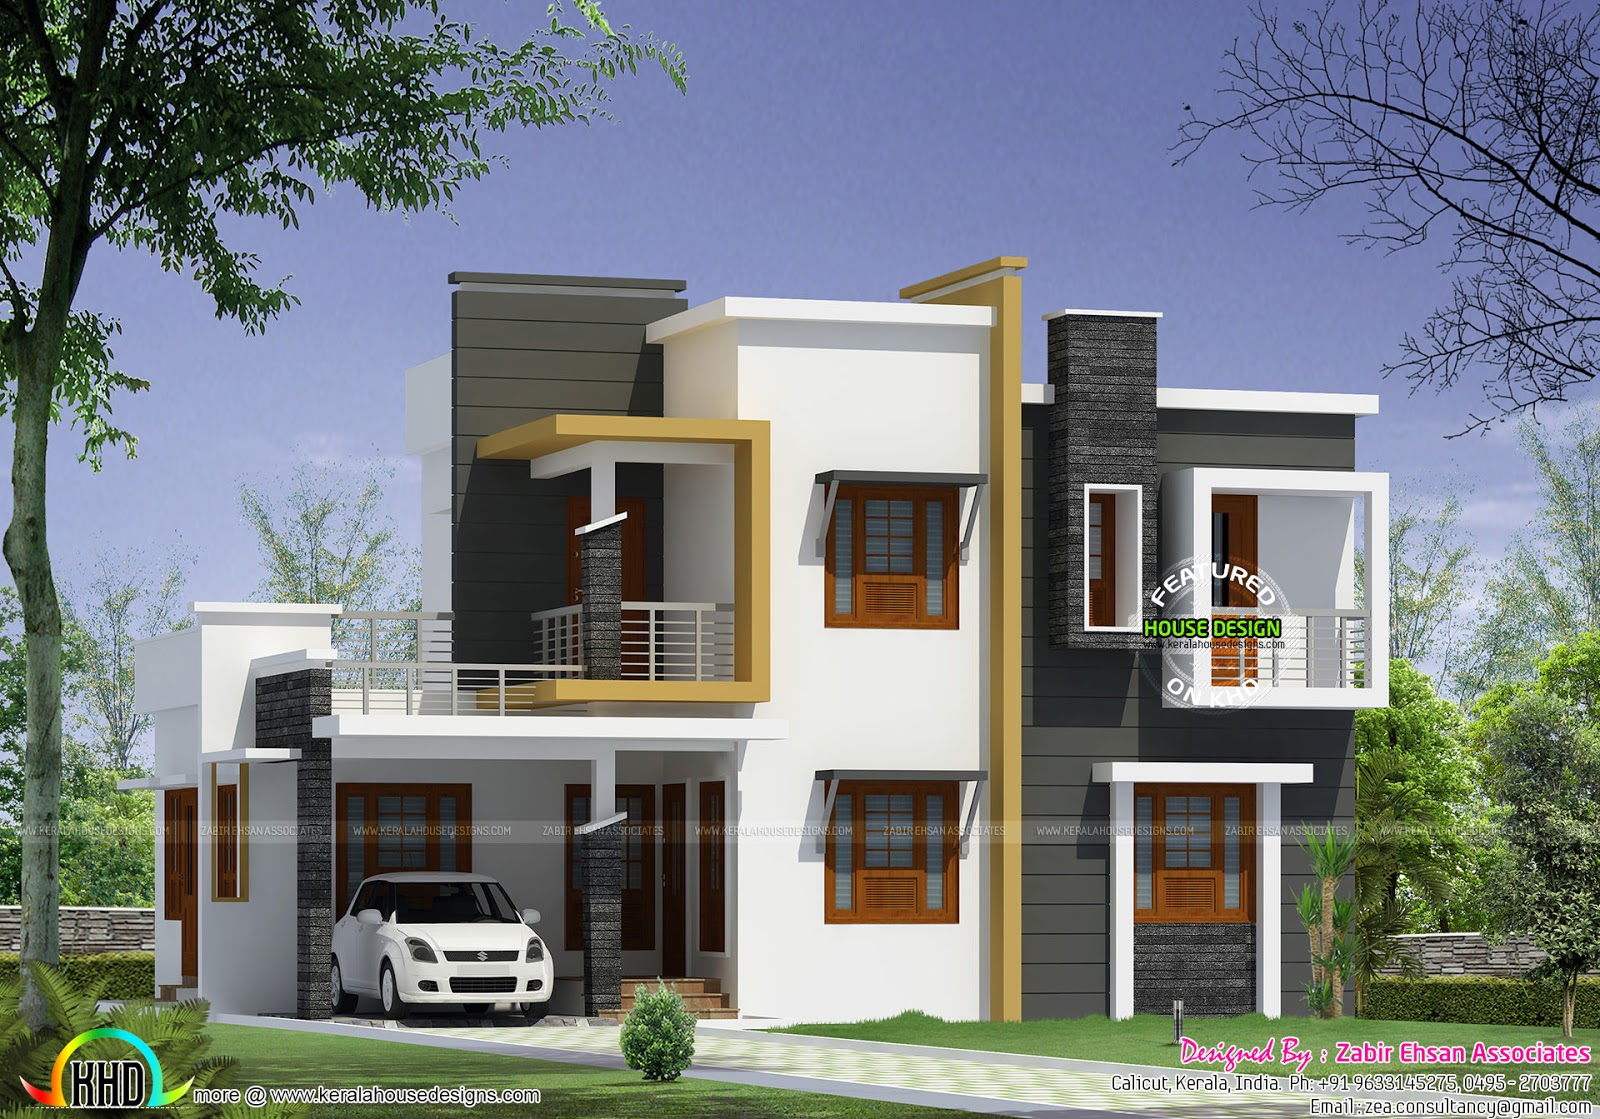 box type modern house plan kerala home design and floor On modern box house design